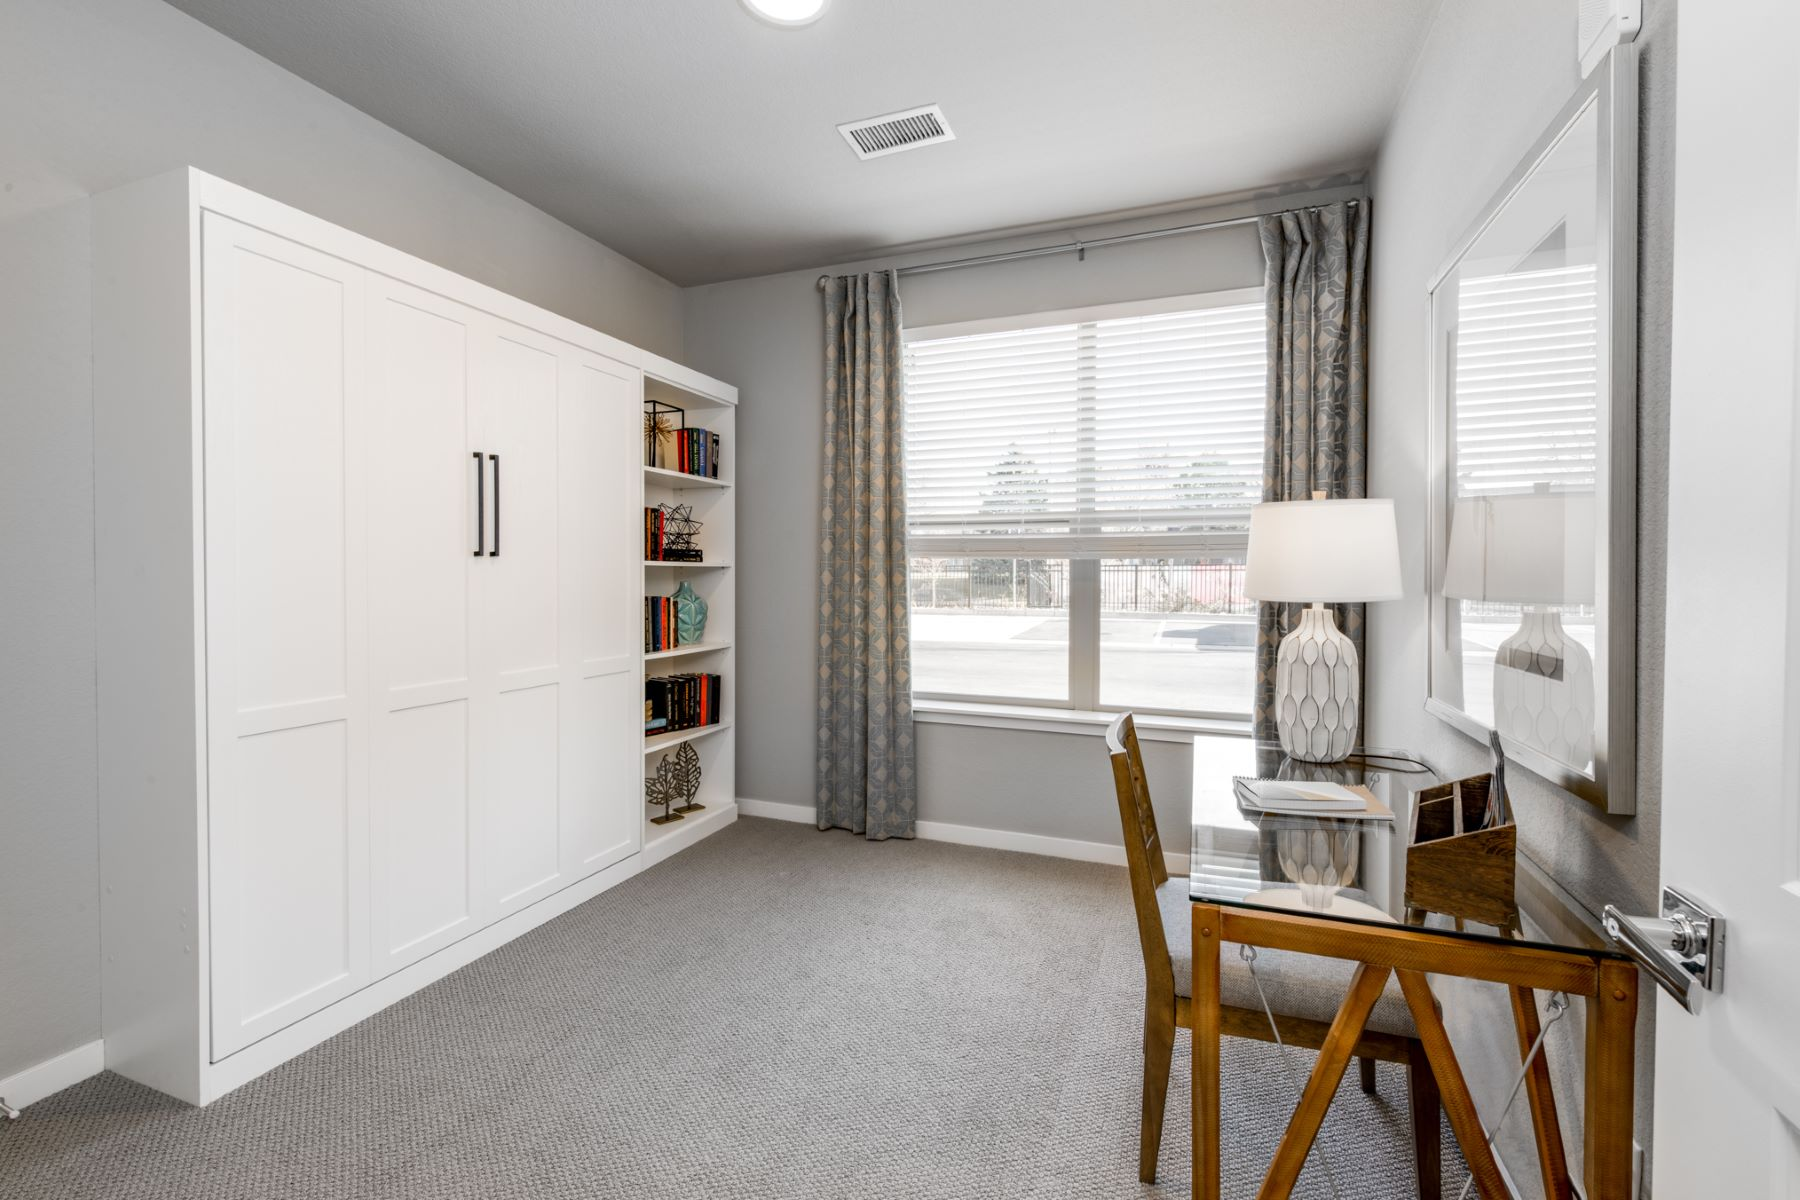 Additional photo for property listing at 155 South Monaco Parkway #308 155 S Monaco Pkwy #308 Denver, Colorado 80224 United States